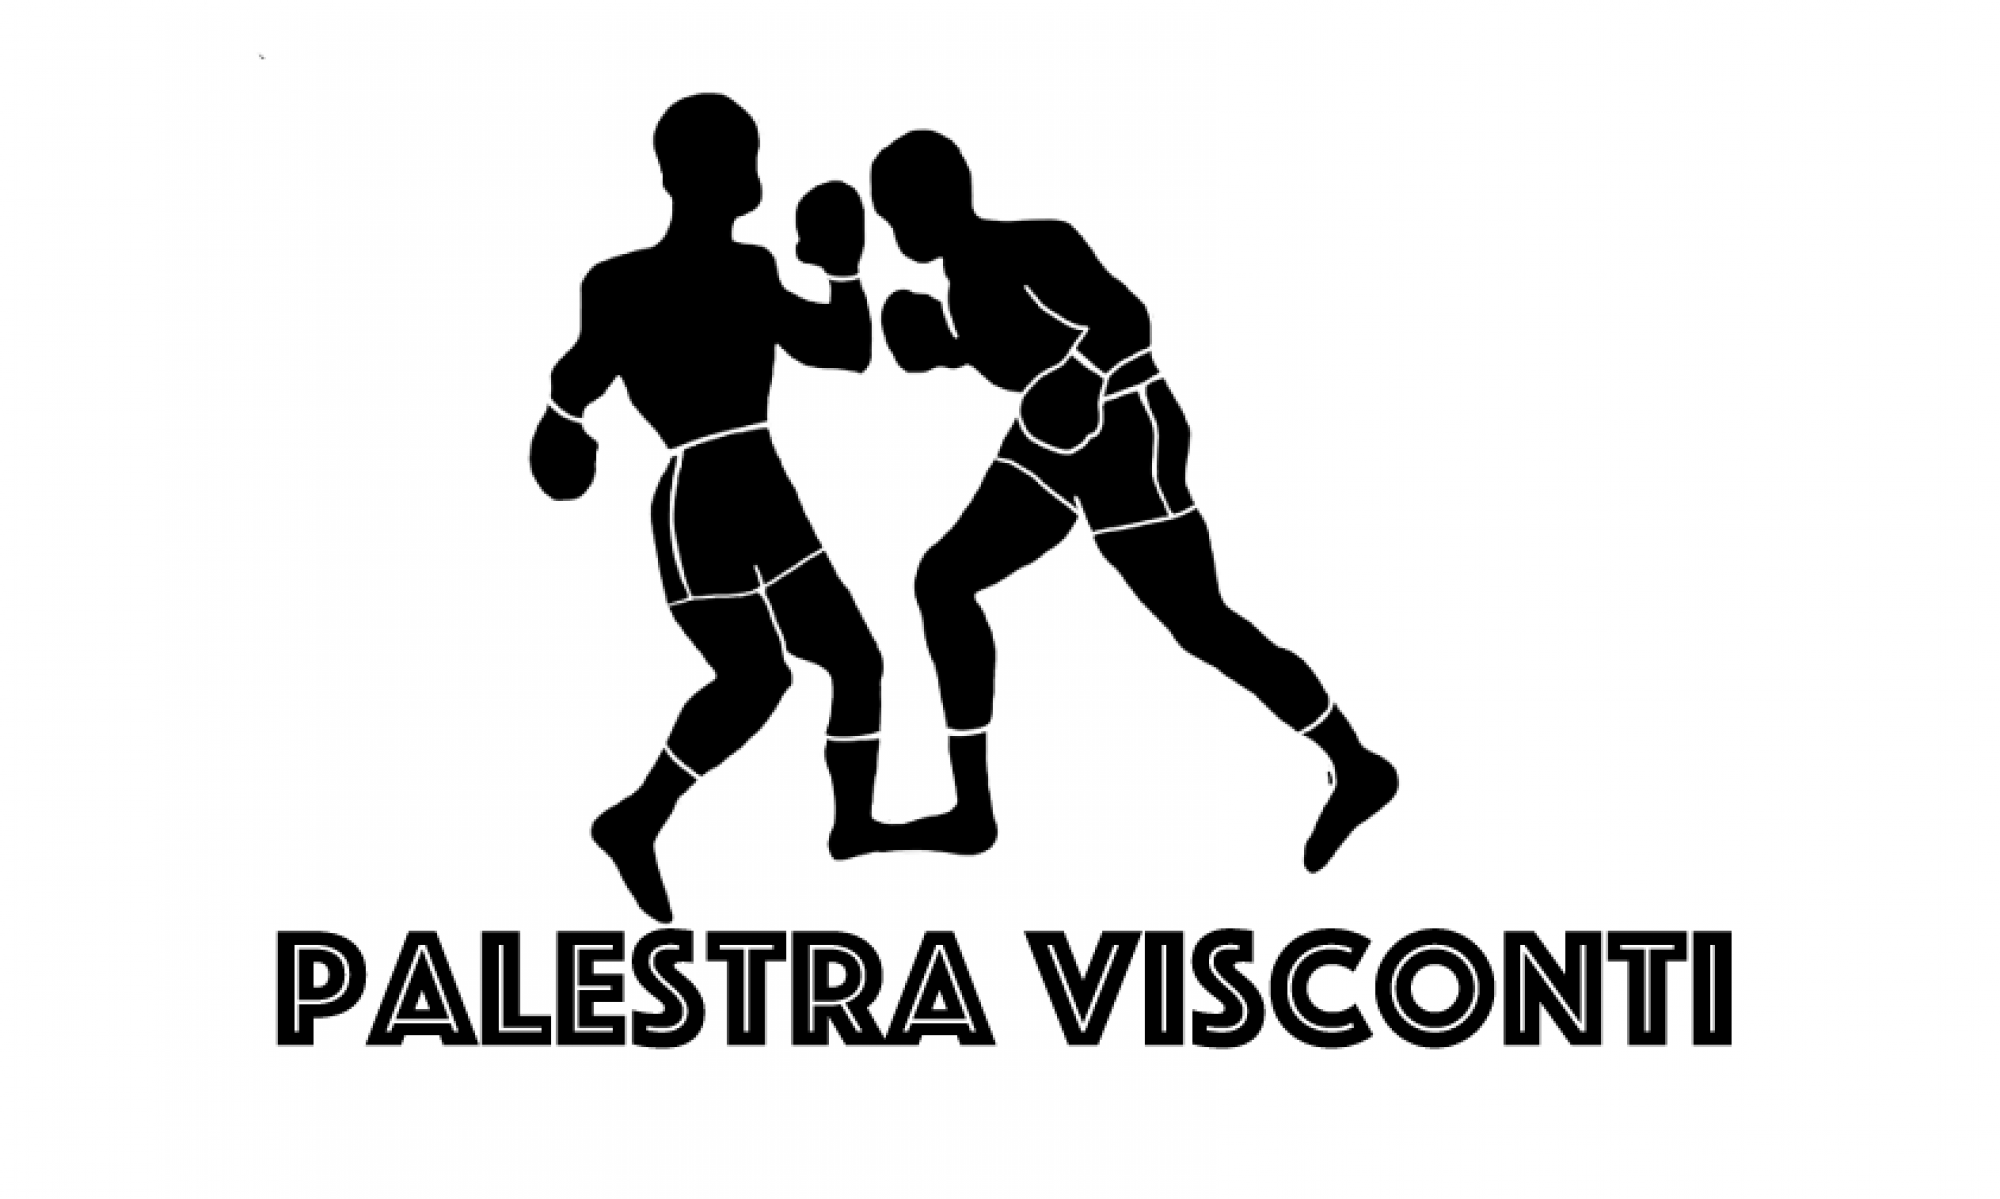 Palestra Visconti